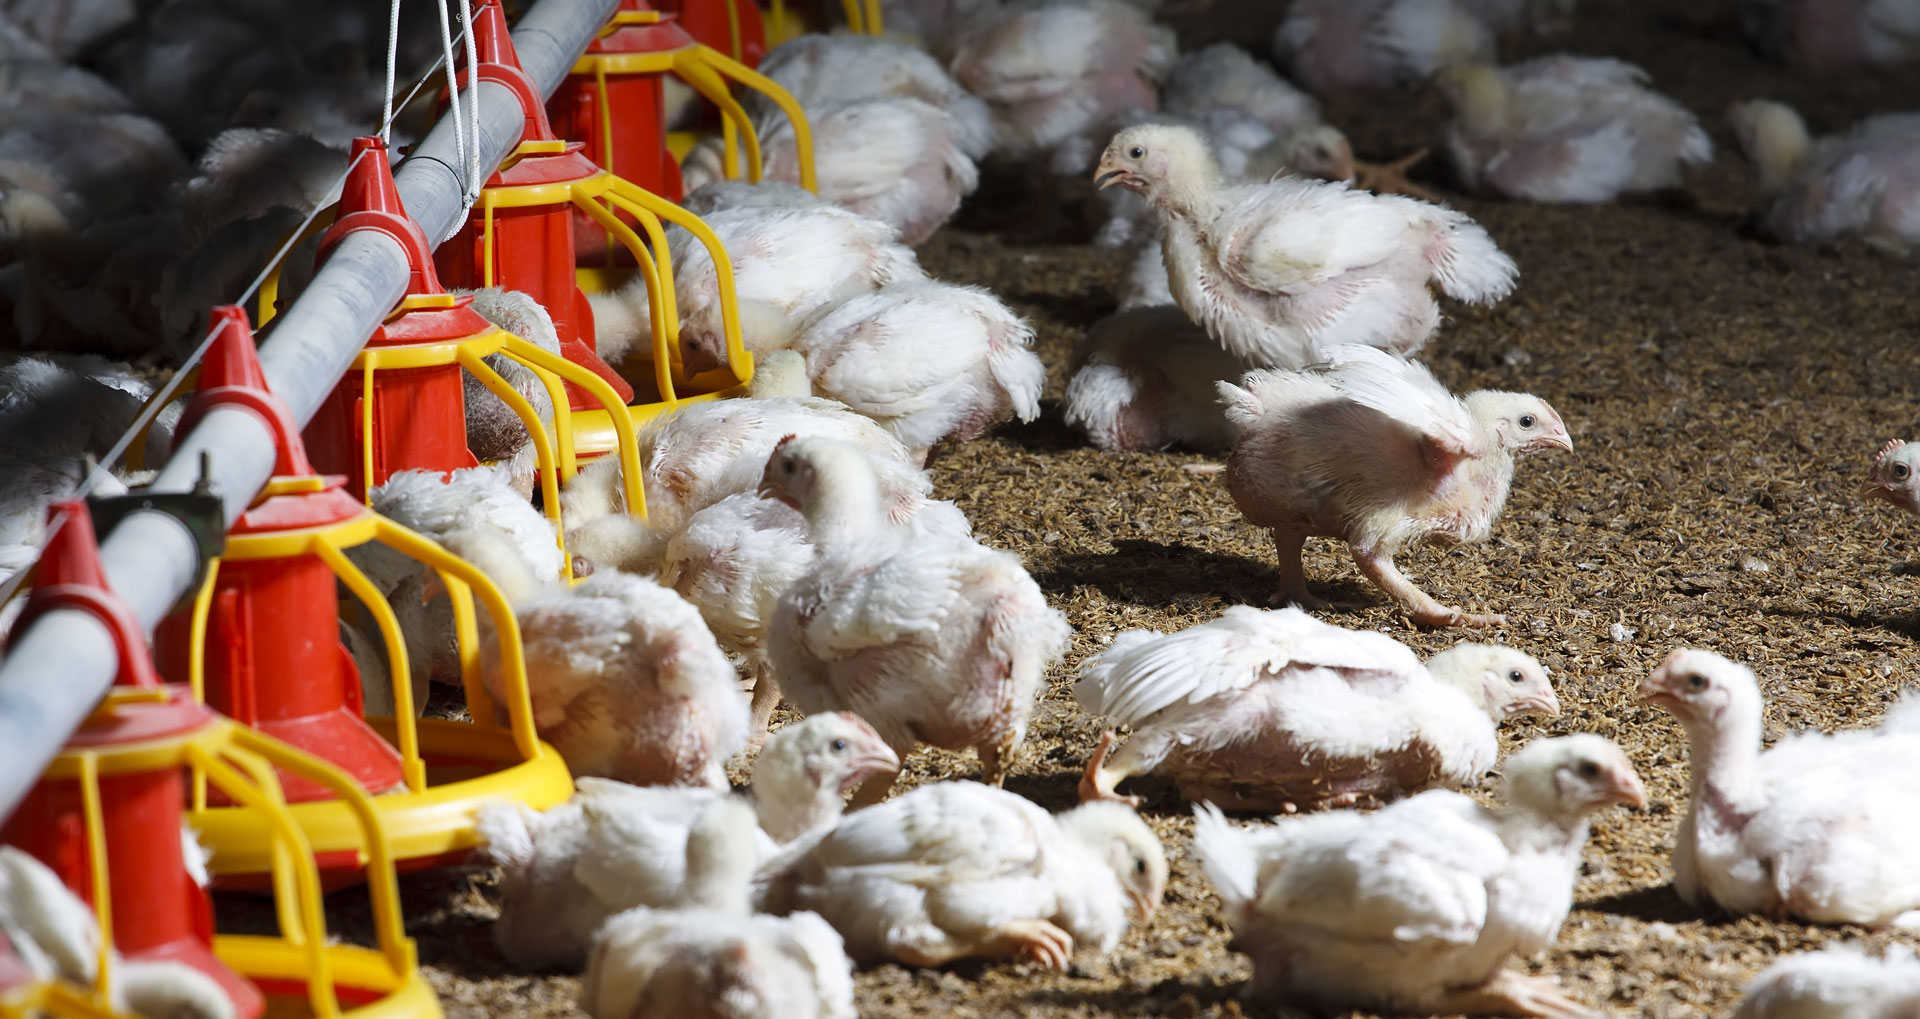 Inside industrialized chicken farm